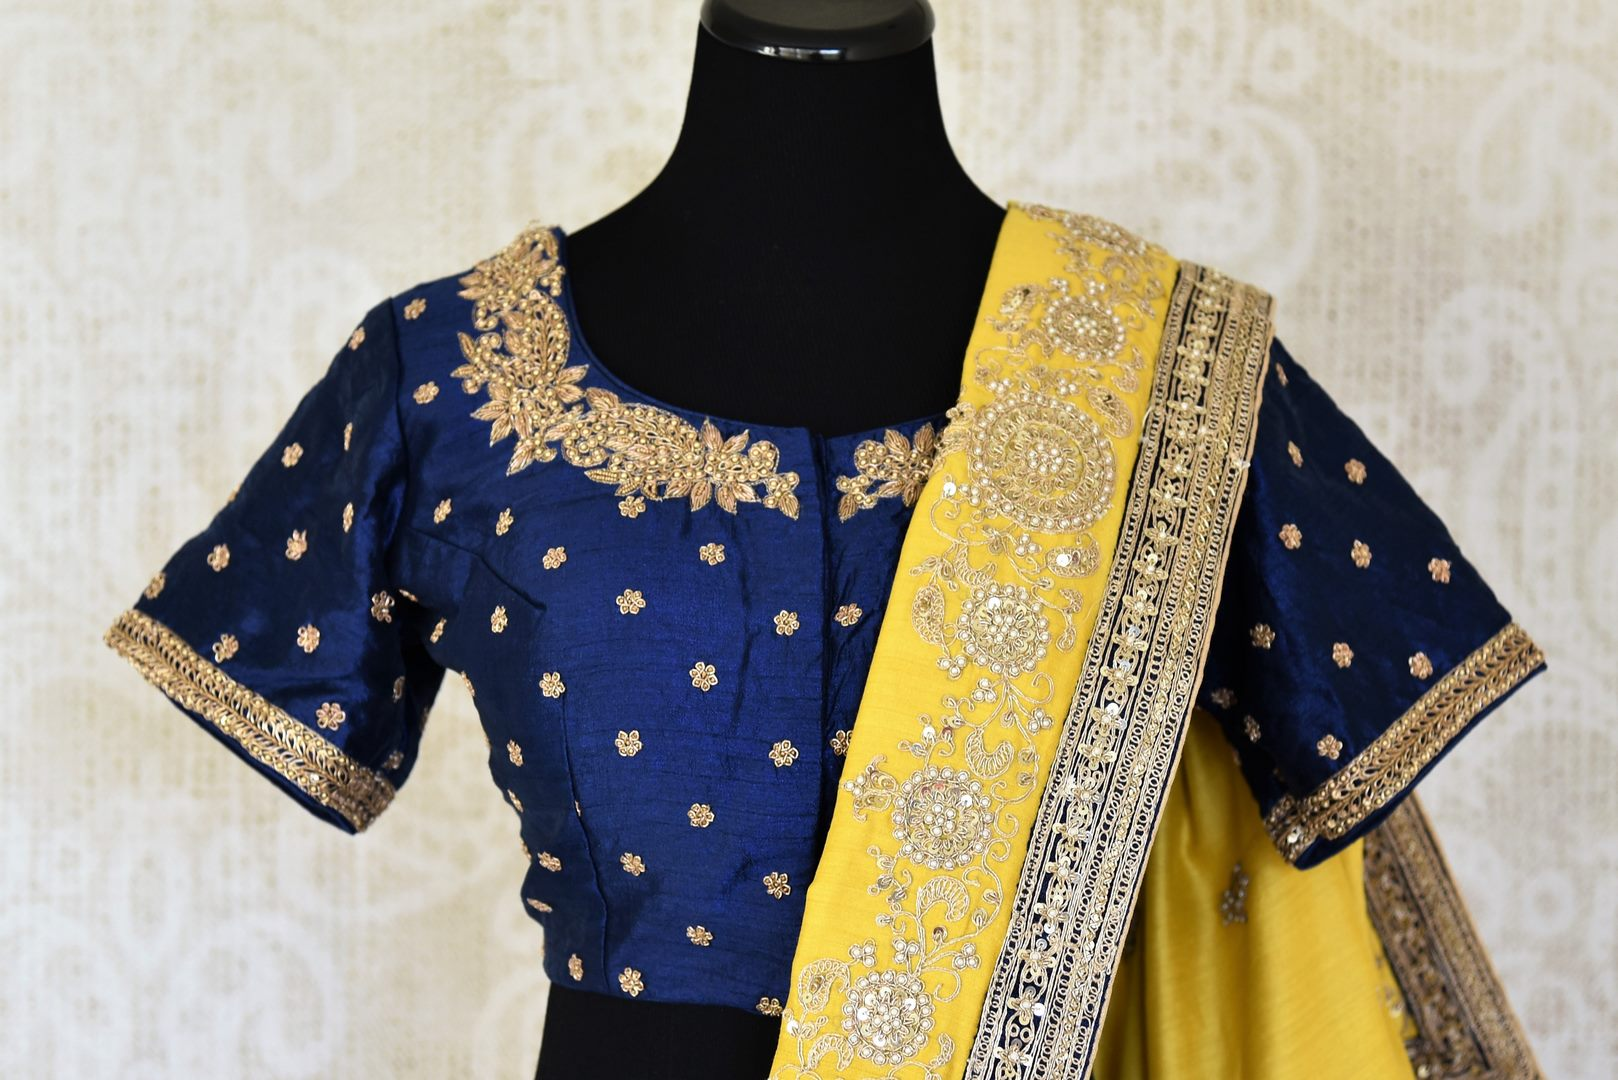 Buy yellow embroidered muga sari with saree blouse online in USA from Pure Elegance. Make your ethnic style perfect with a range of exquisite Indian designer saris with blouses, embroidered sarees, handloom saris available at our exclusive Indian fashion store in USA and also on our online store. Shop now.-blouse pallu